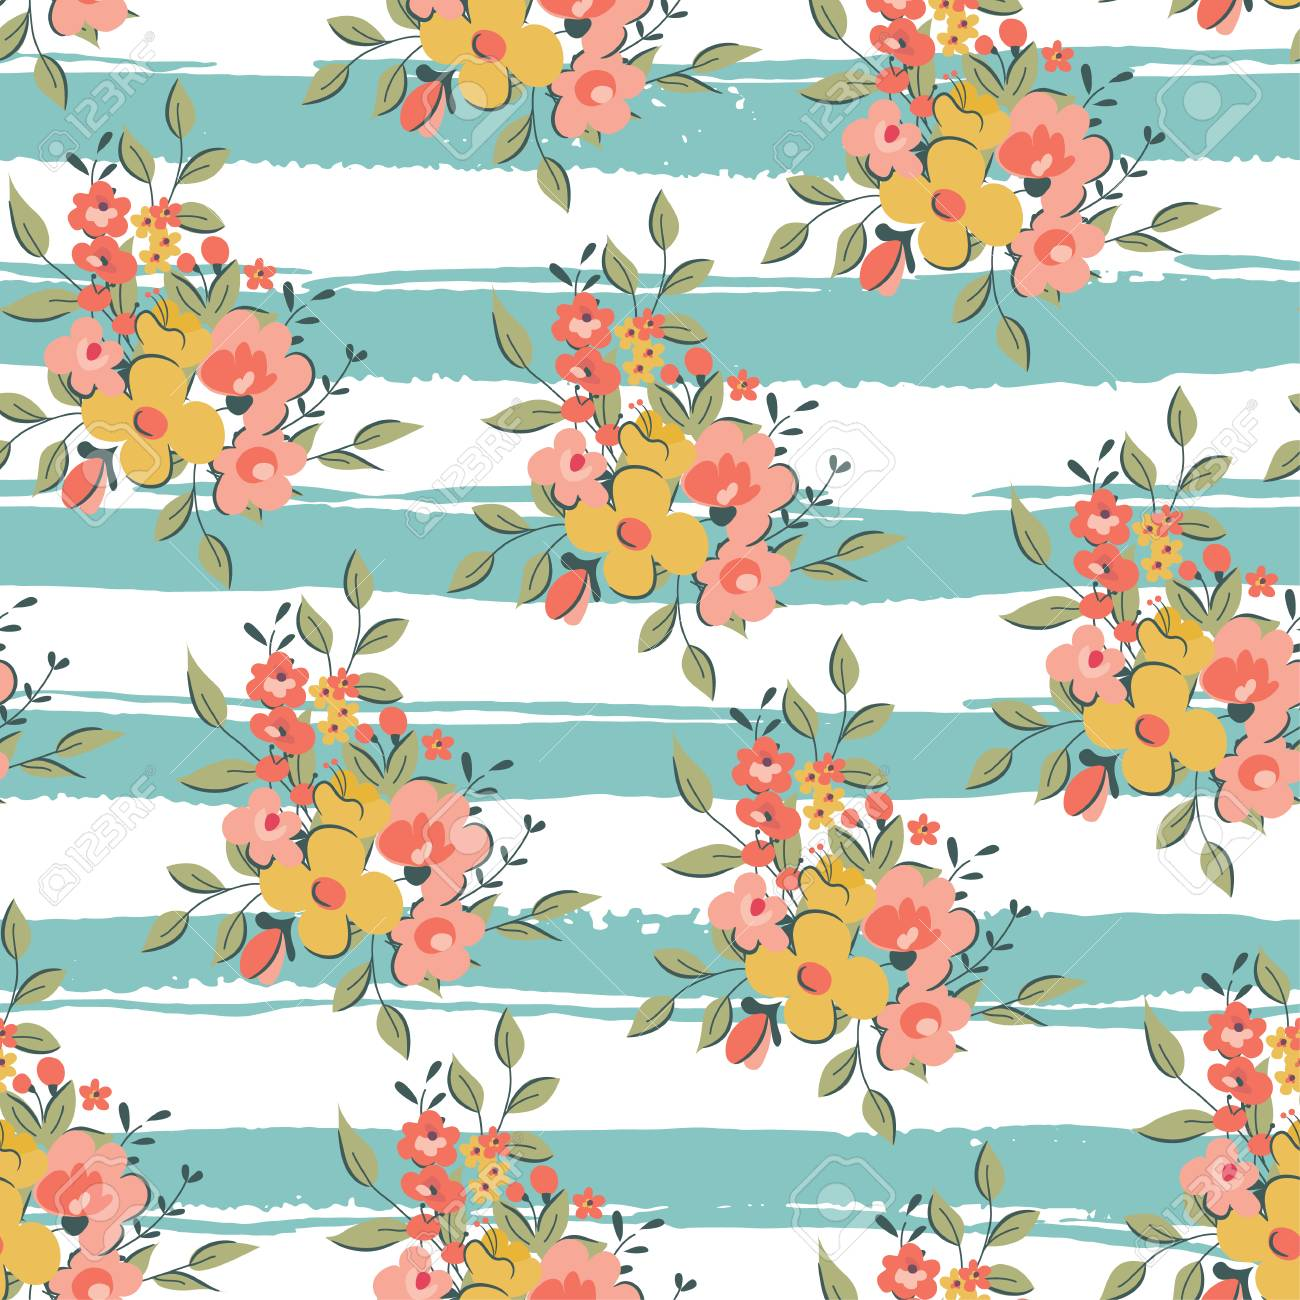 Seamless Vintage Floral Background Vector Illustration Royalty